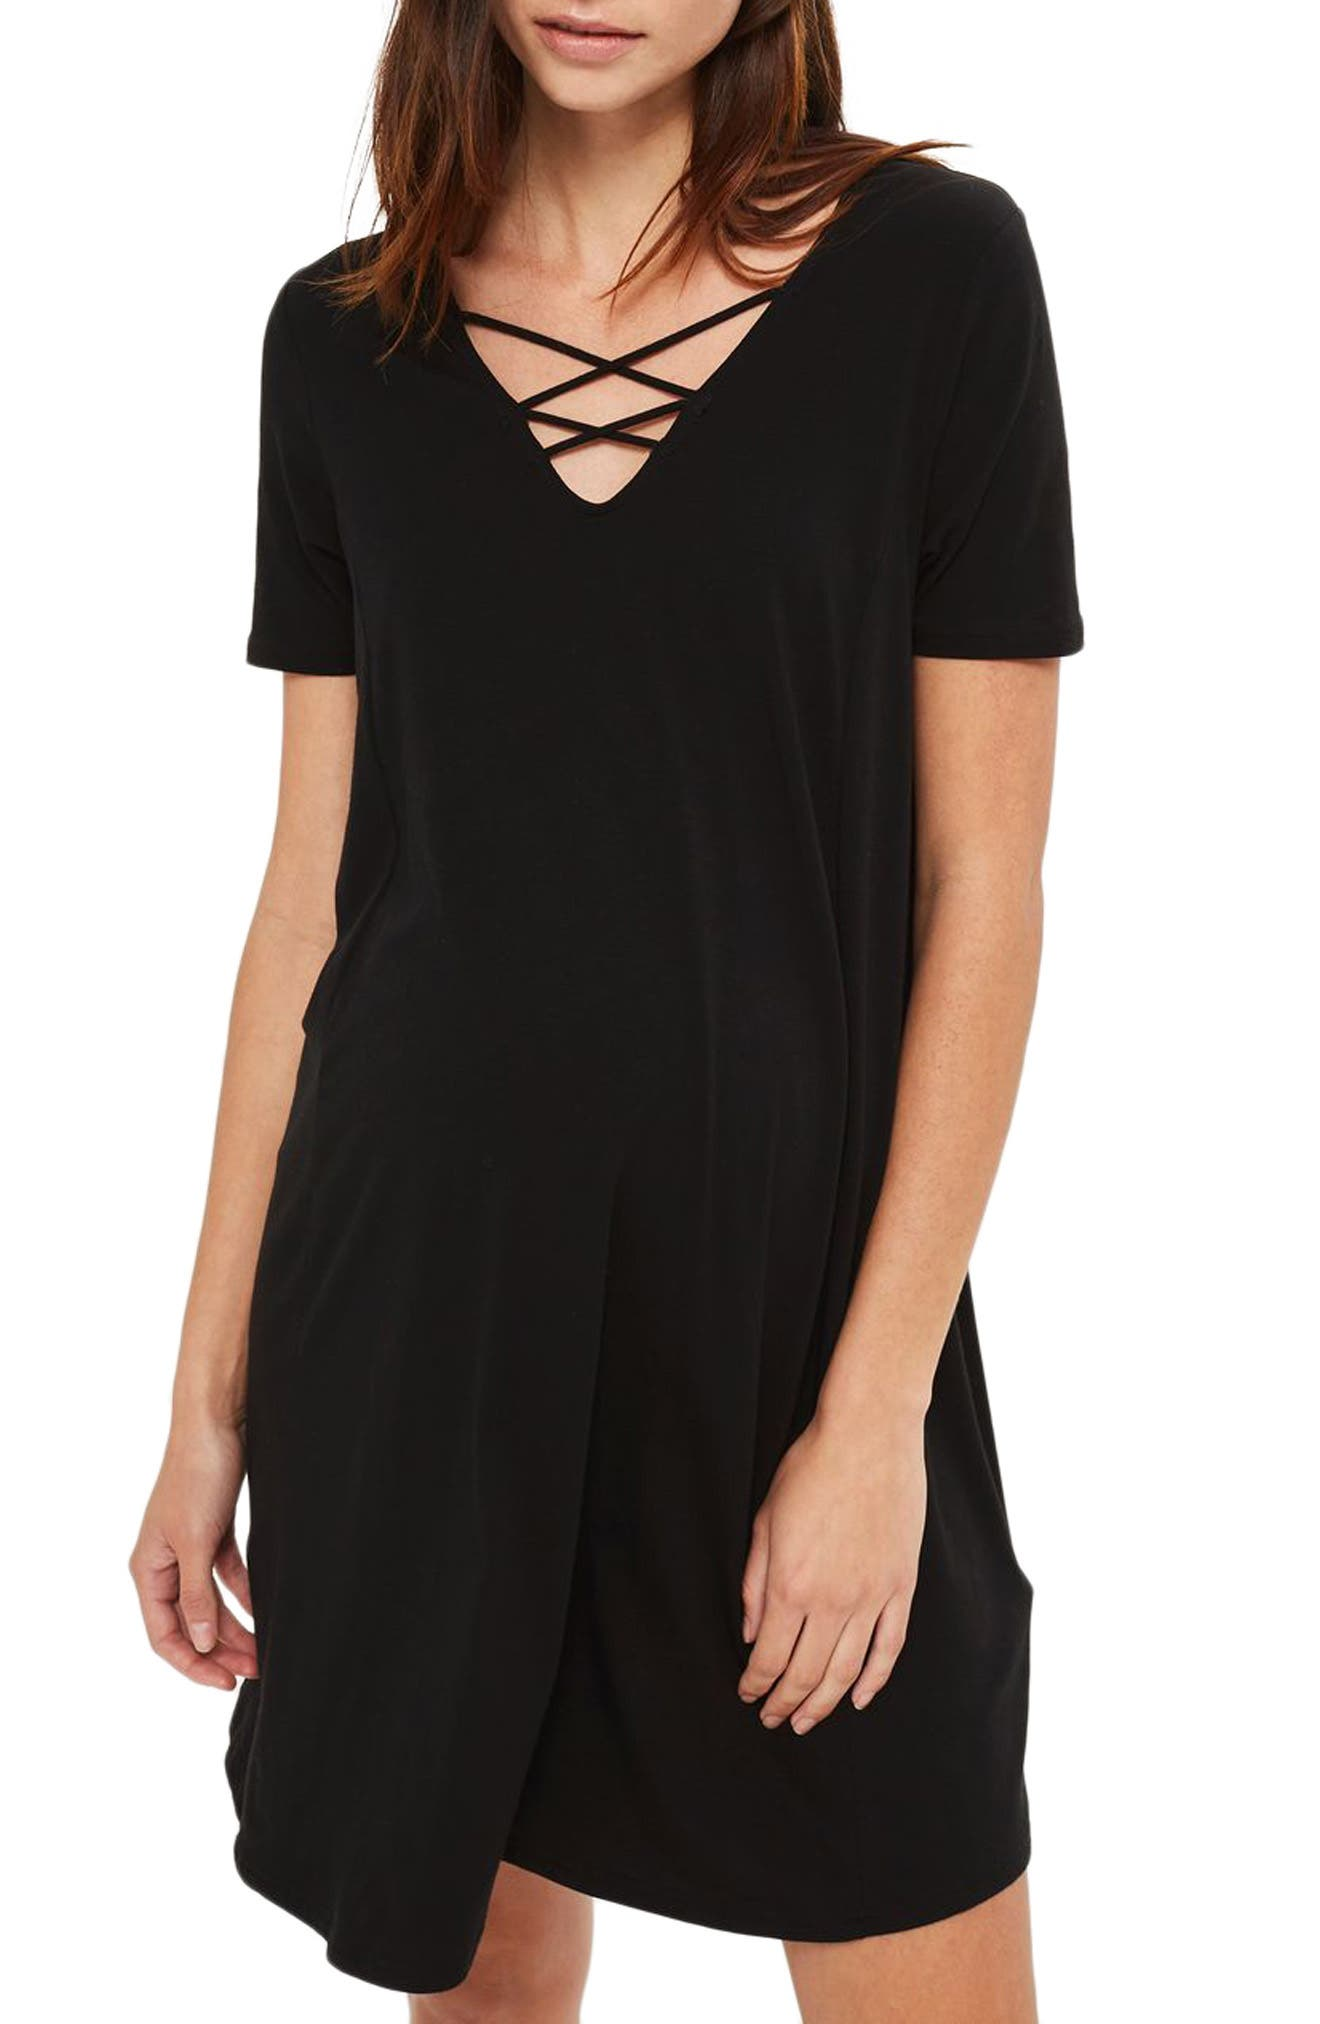 Topshop Lattice Trapeze Maternity Dress